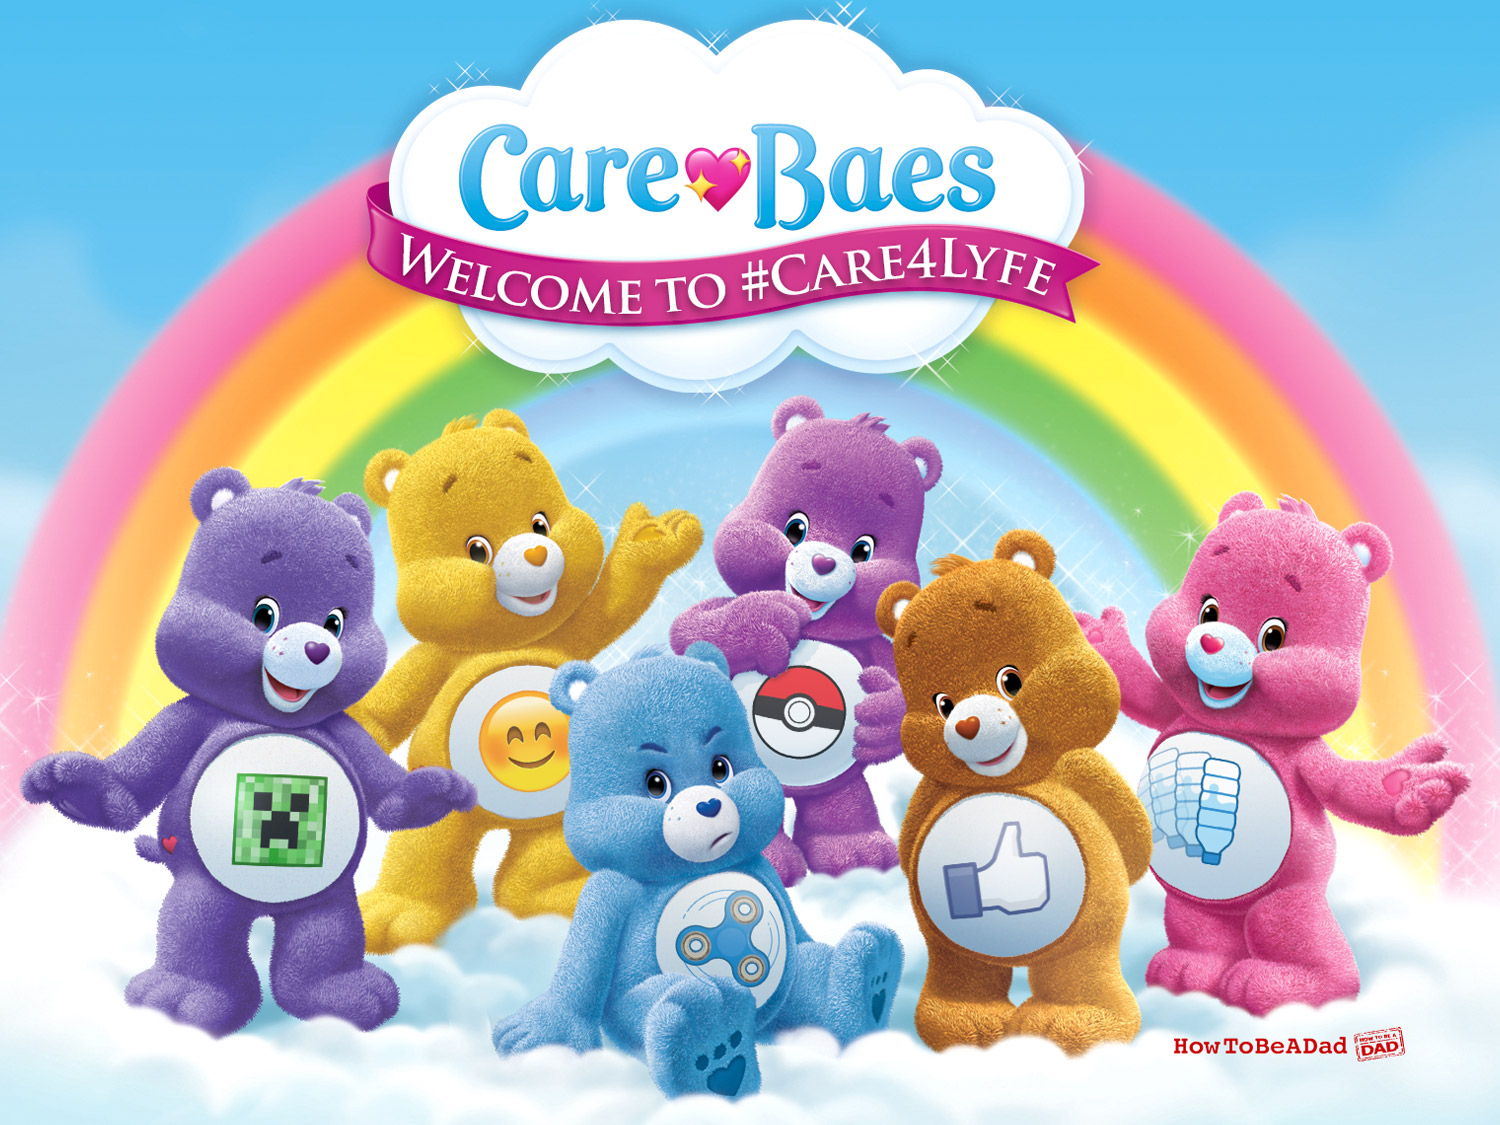 Care Baes Care Bears Ruined Childhood